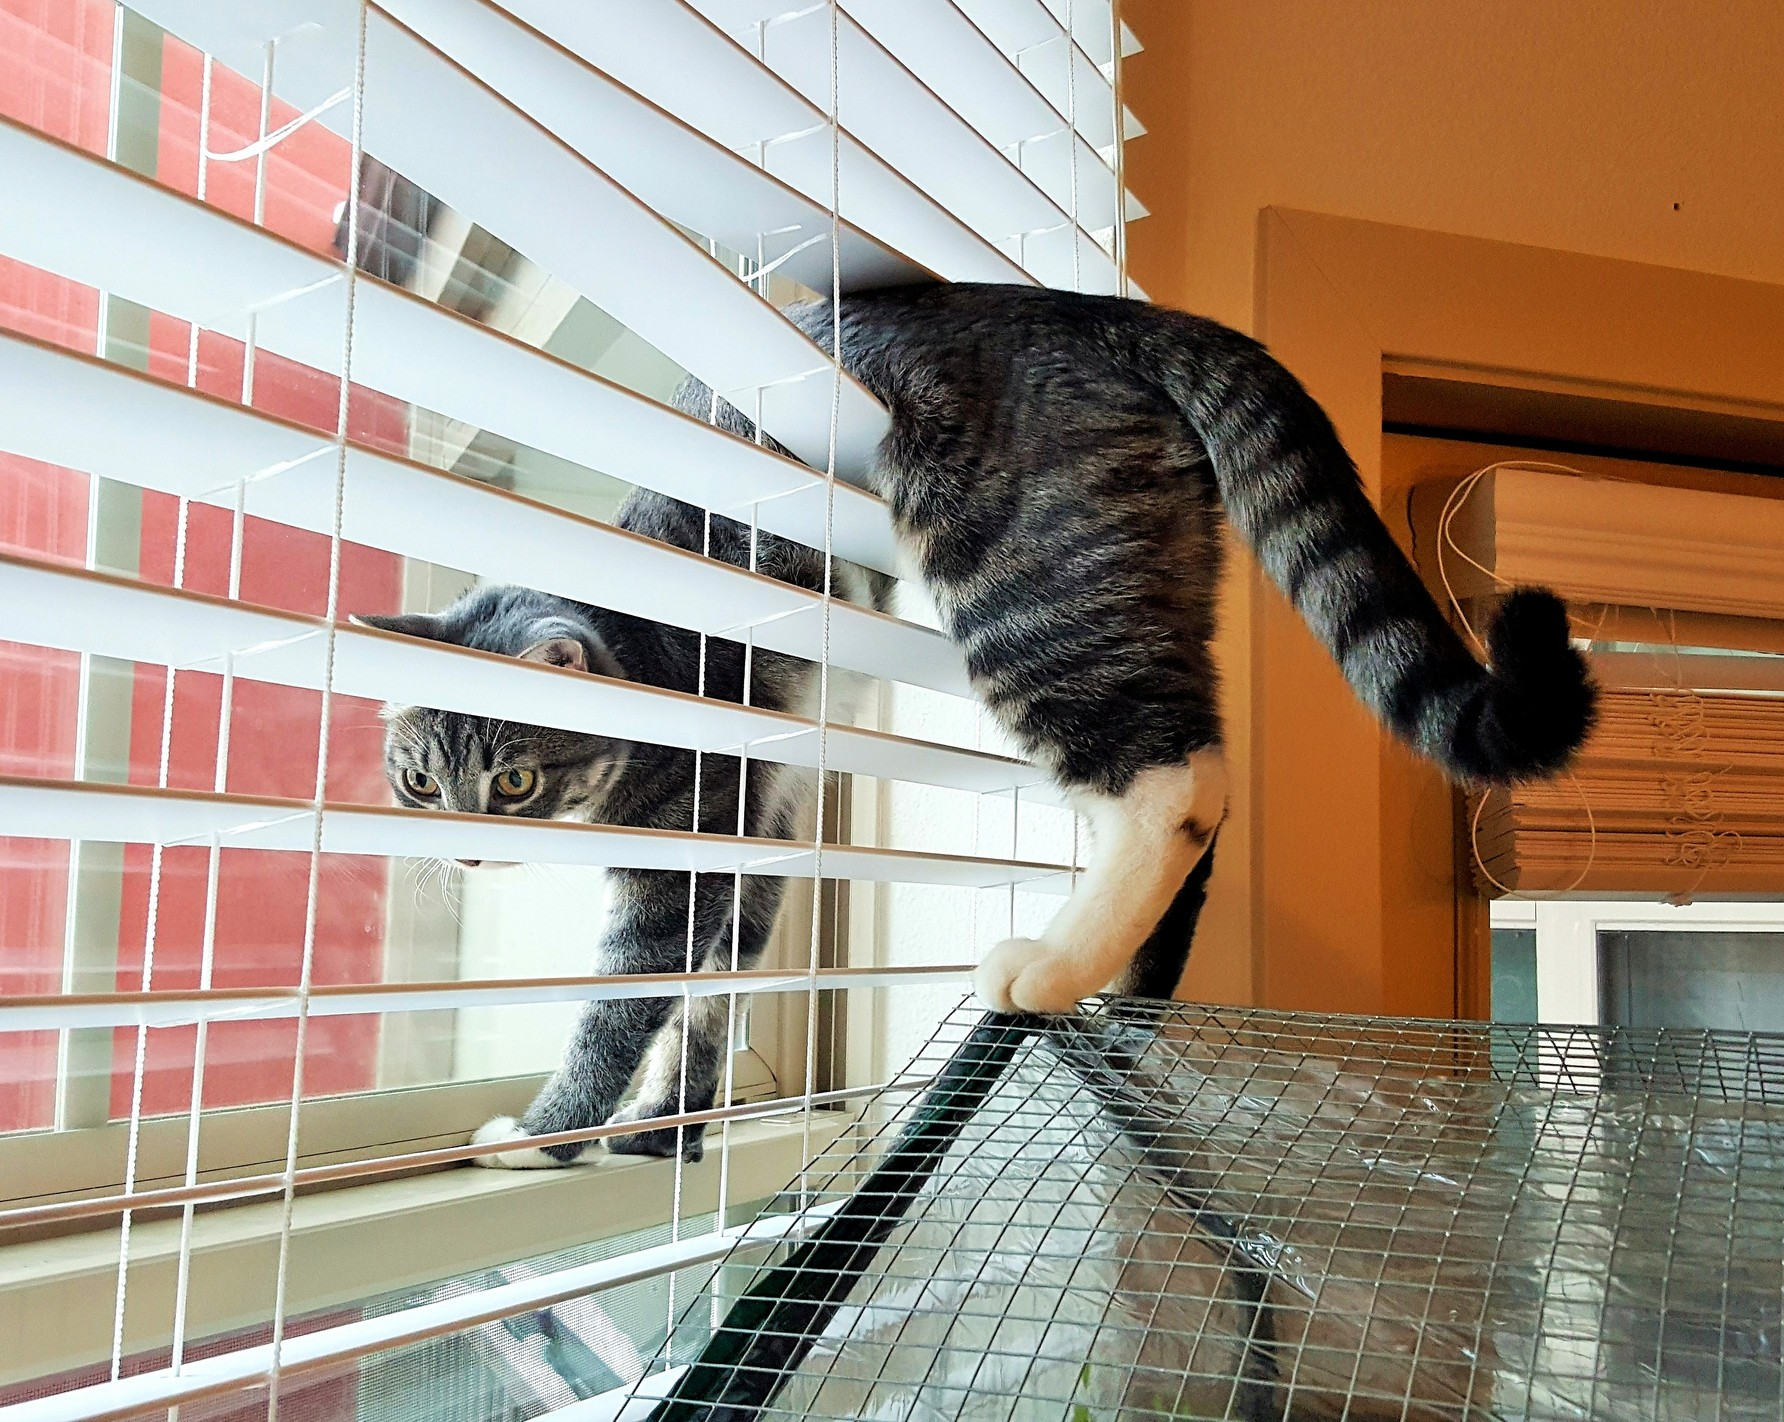 Sif finds creative ways to stare out the window.